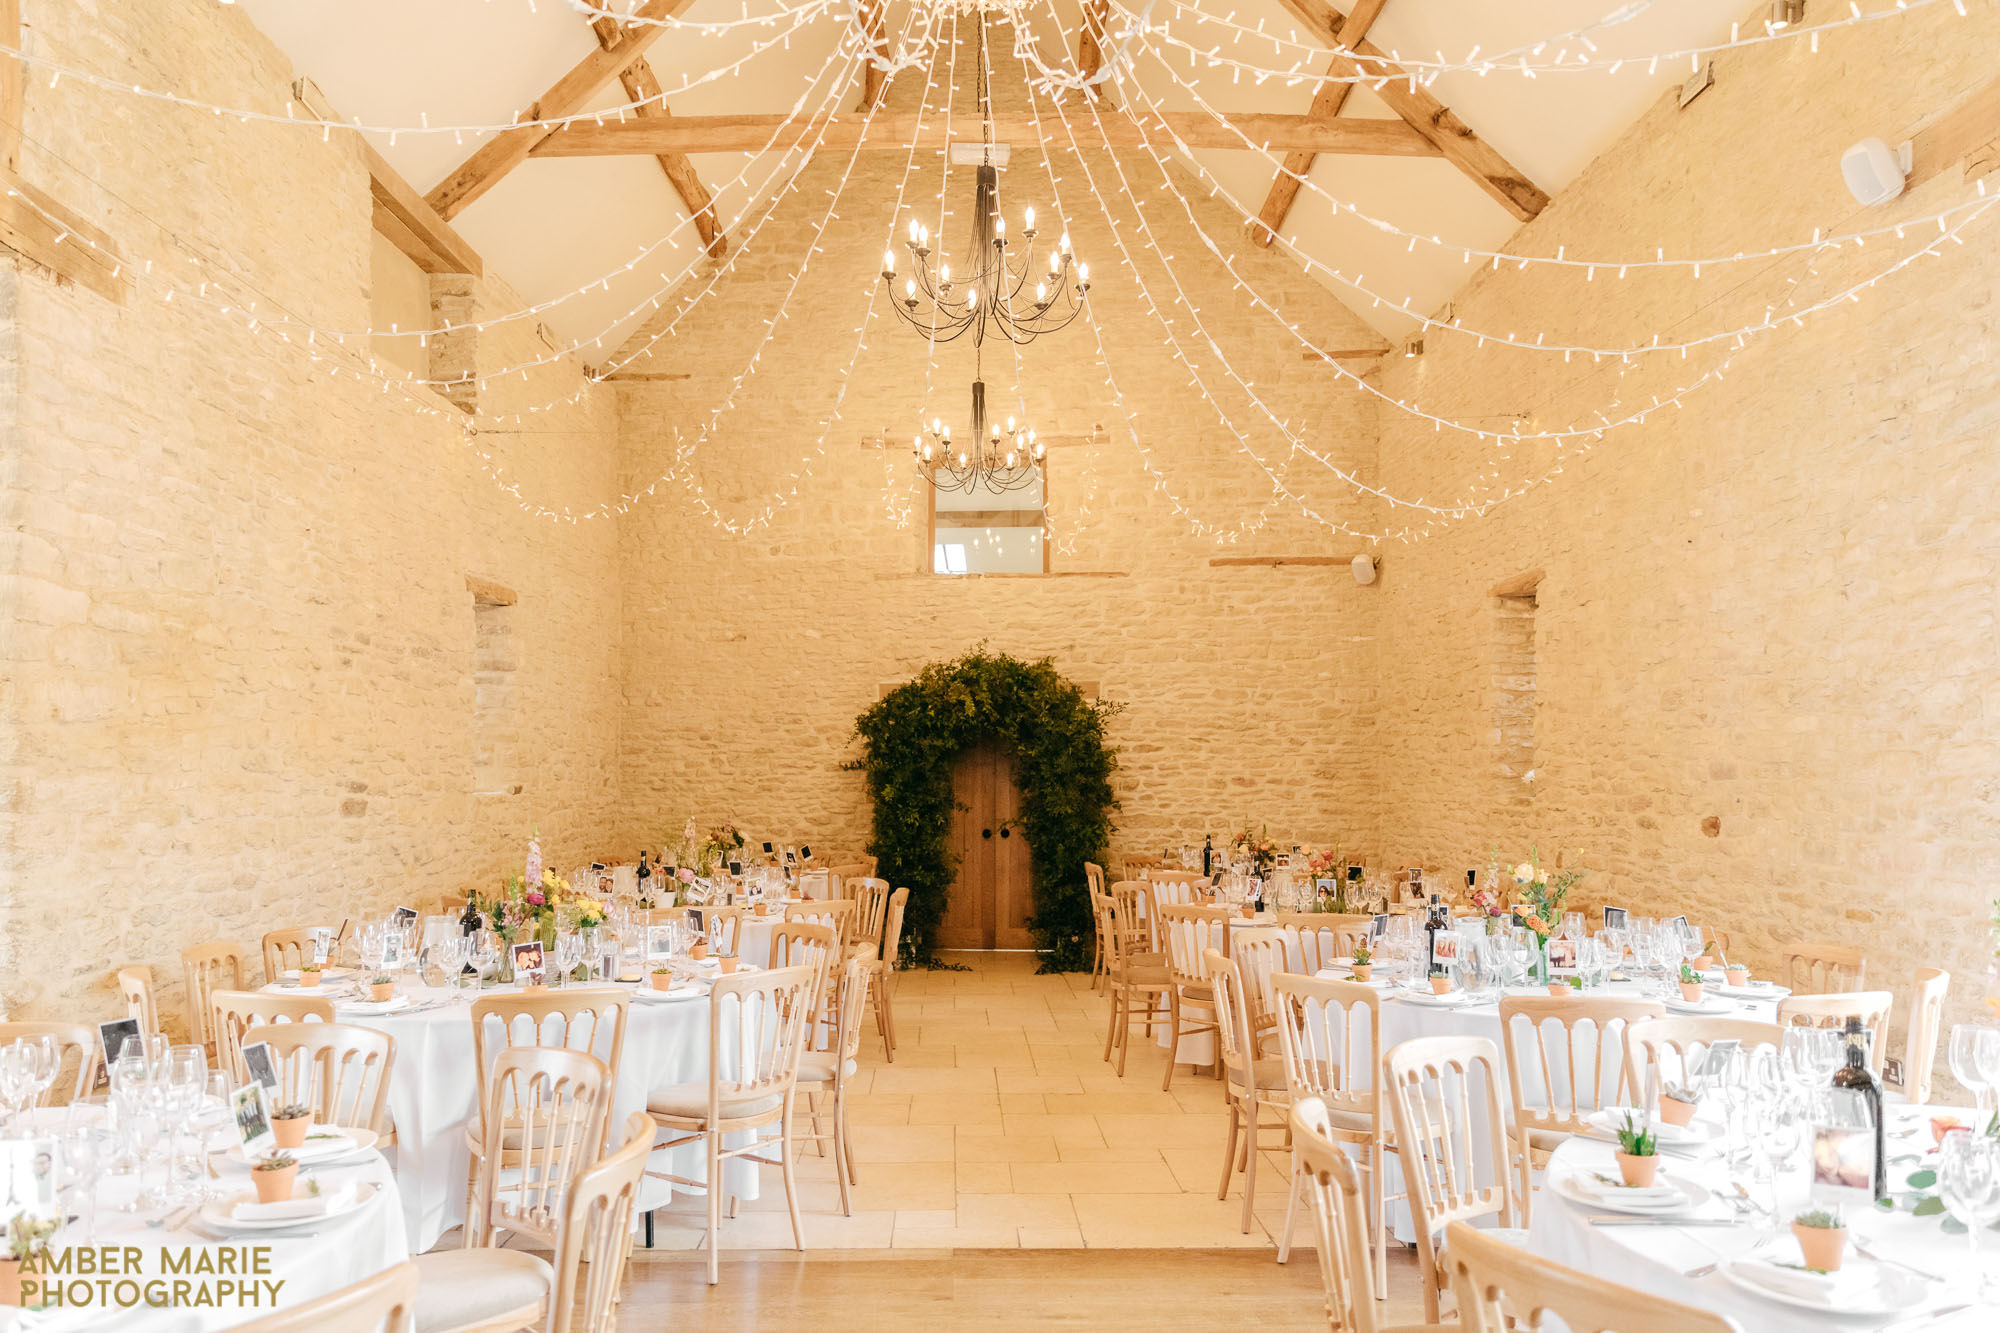 wedding reception at kingscote barn in the cotswolds